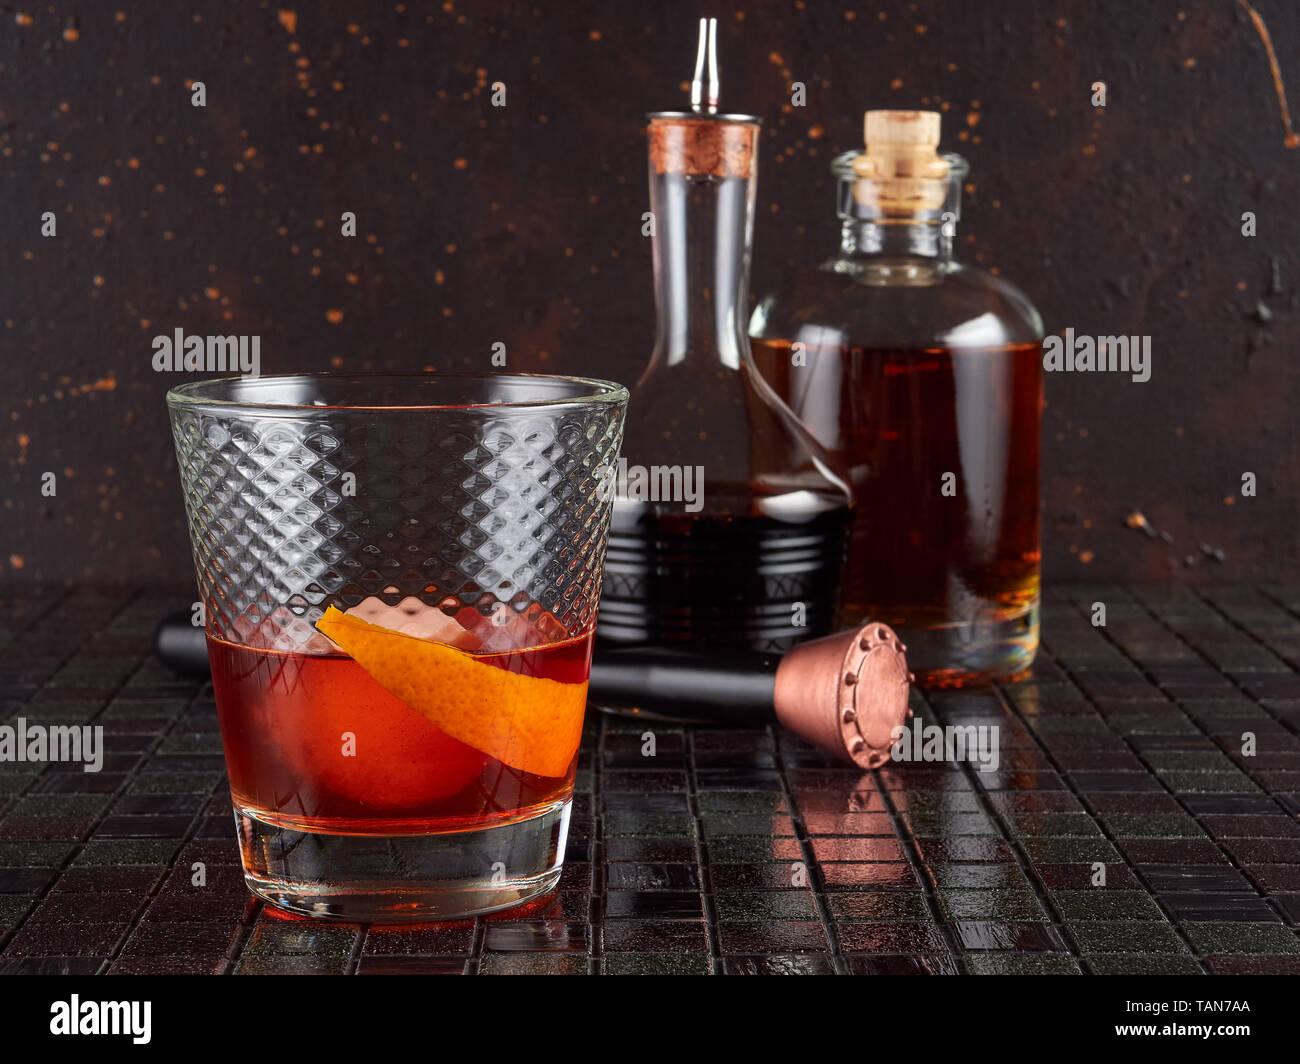 Old fashioned: a cocktail made by muddling sugar with bitters, then adding bourbon, and a twist of citrus rind - Stock Image